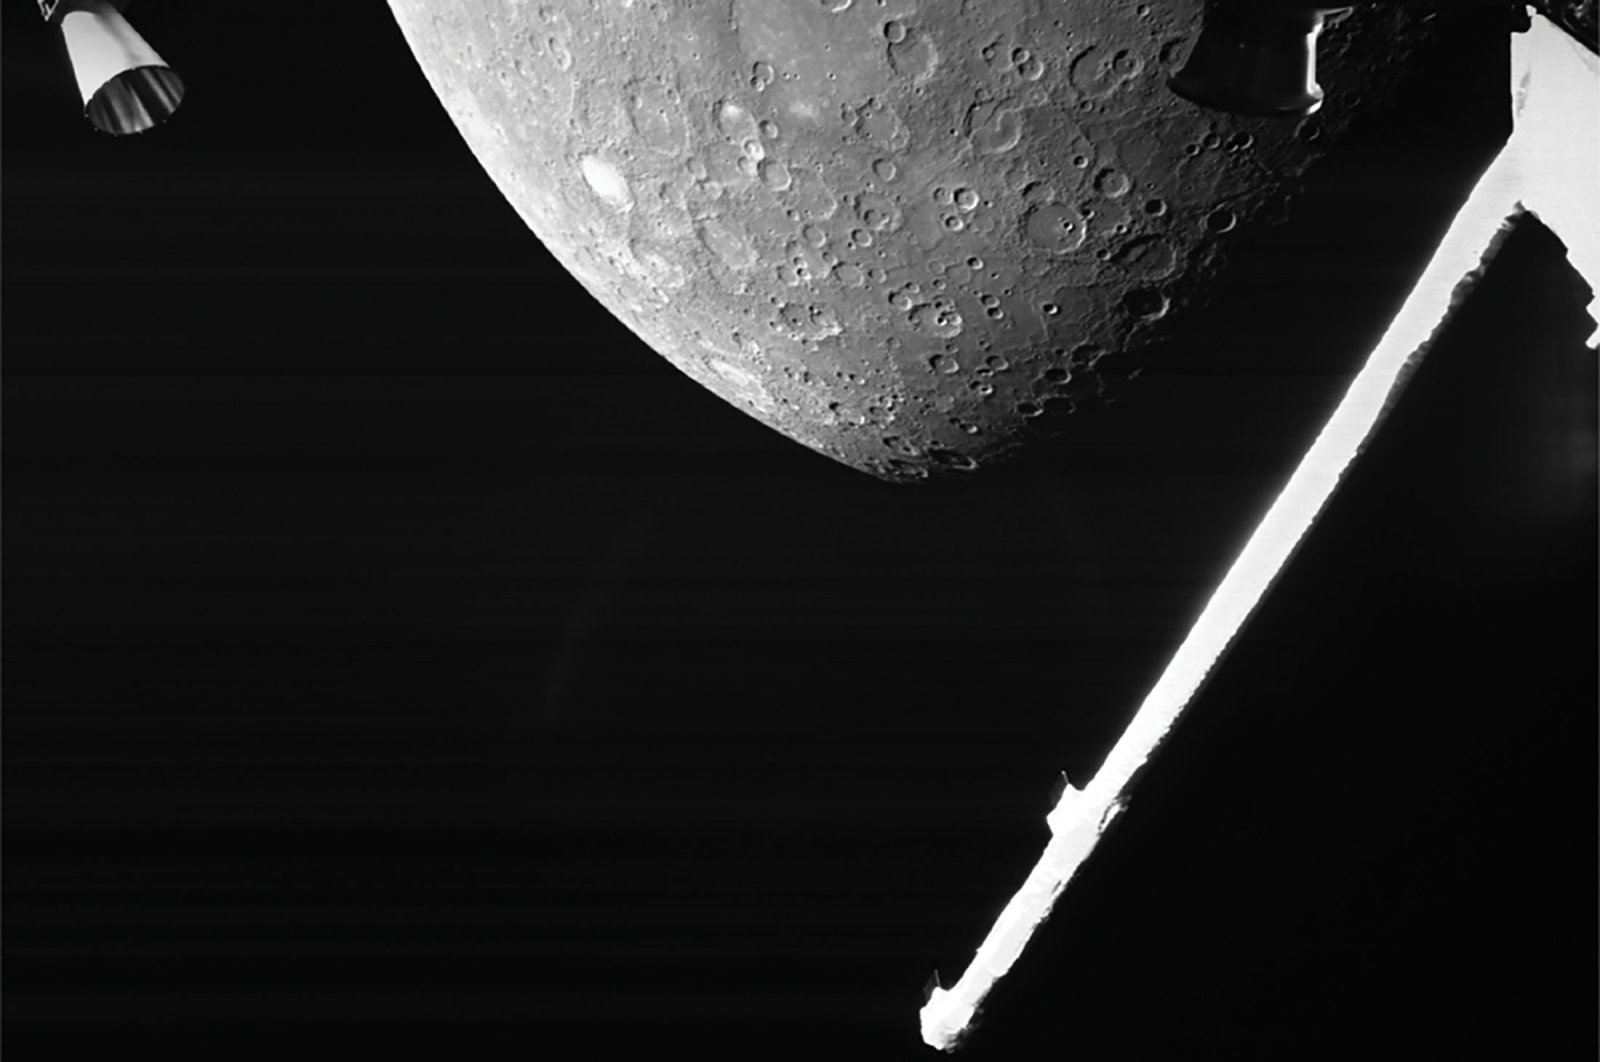 A handout photo by the European Space Agency shows a view of Mercury captured by the joint European-Japanese BepiColombo mission as the spacecraft flew past the planet for a gravity assist manoeuvre, Oct. 1, 2021. (ESA via AP)